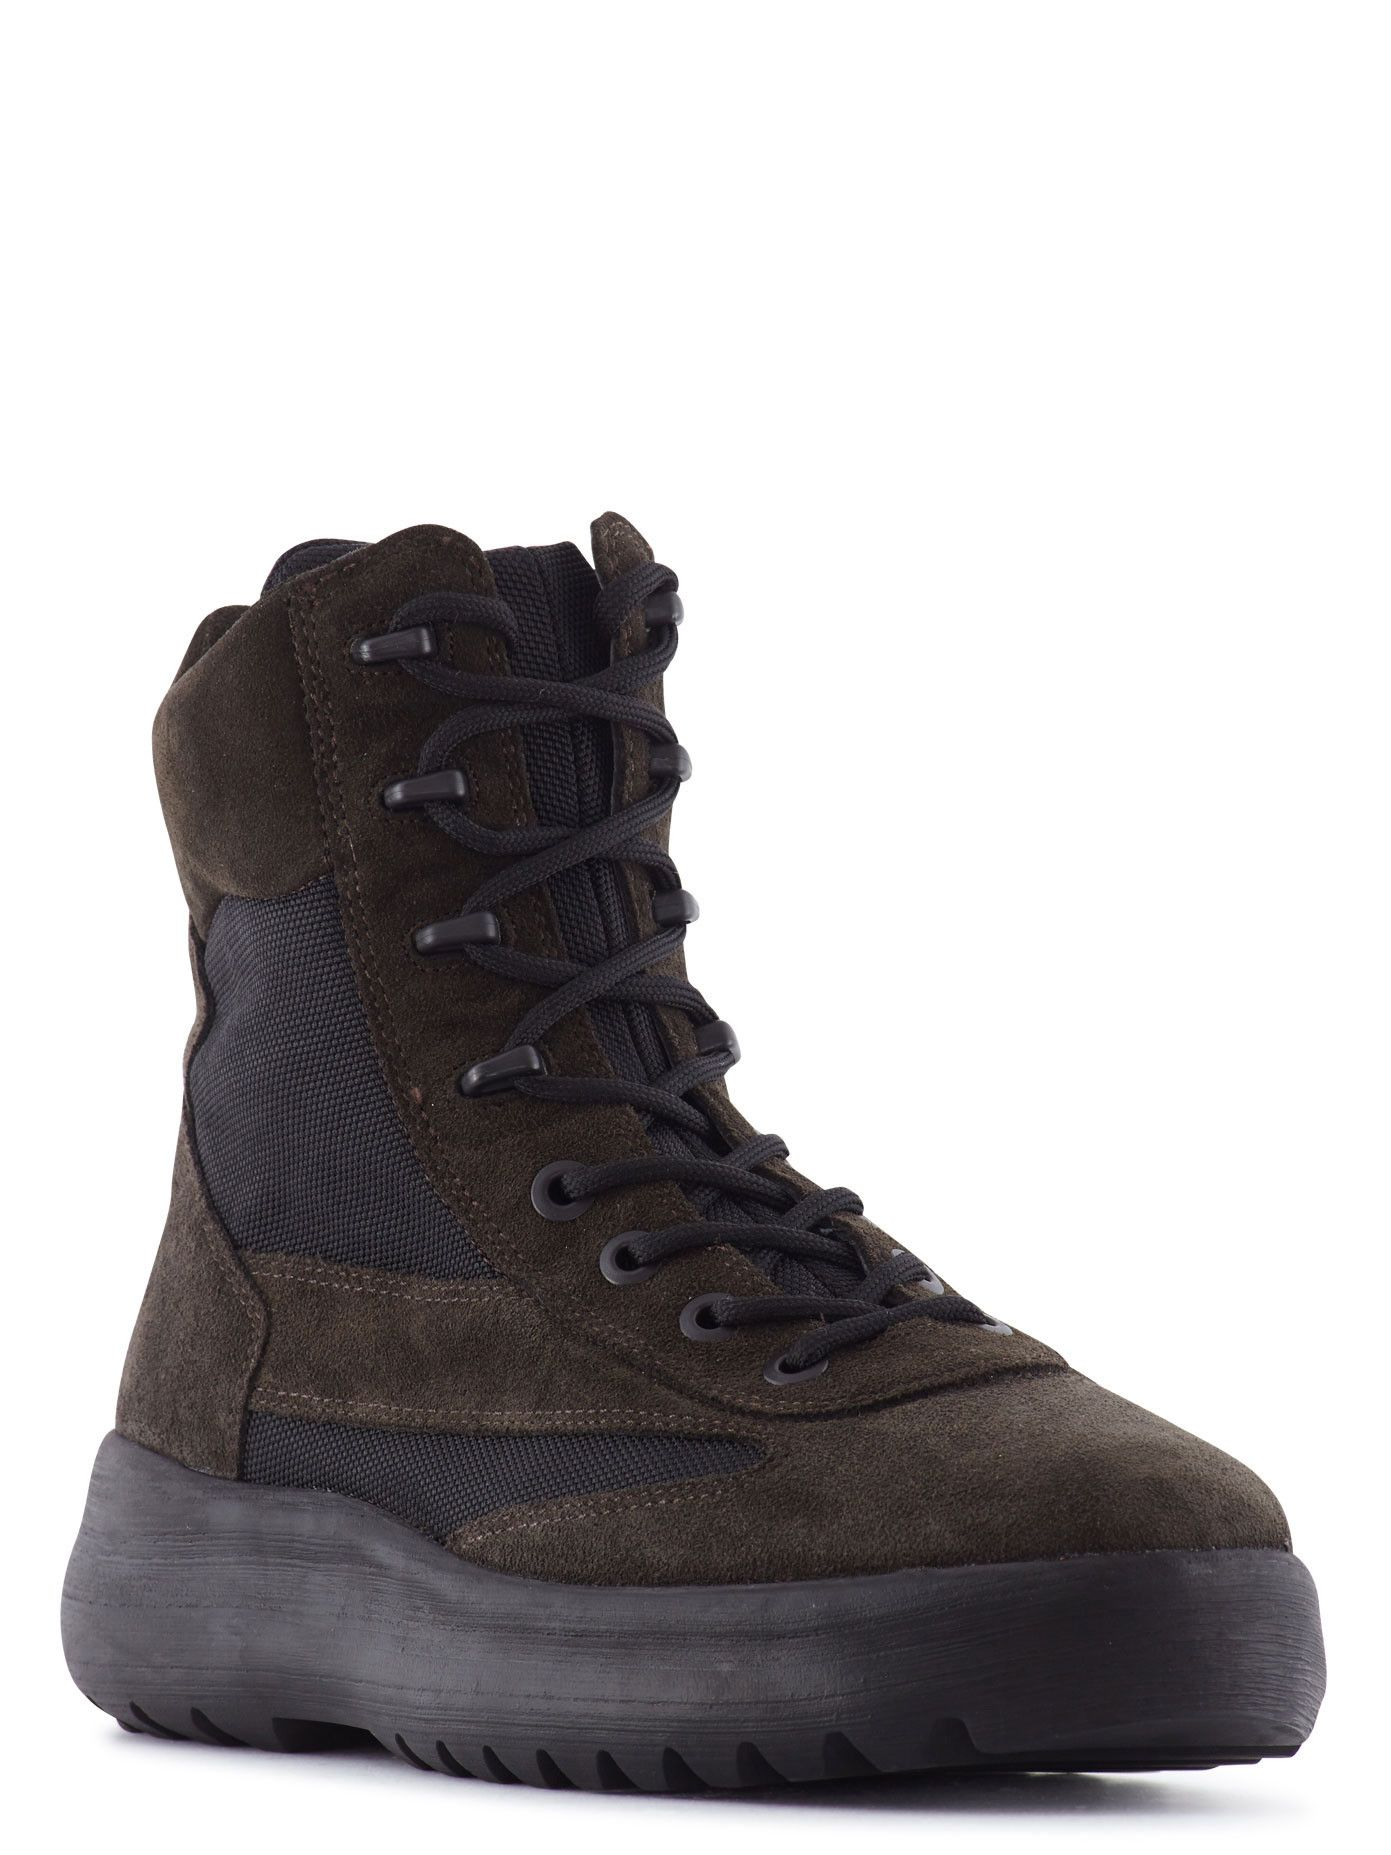 4f2cdfa2815 Yeezy Season 5 - Suede And Mesh Military Boots